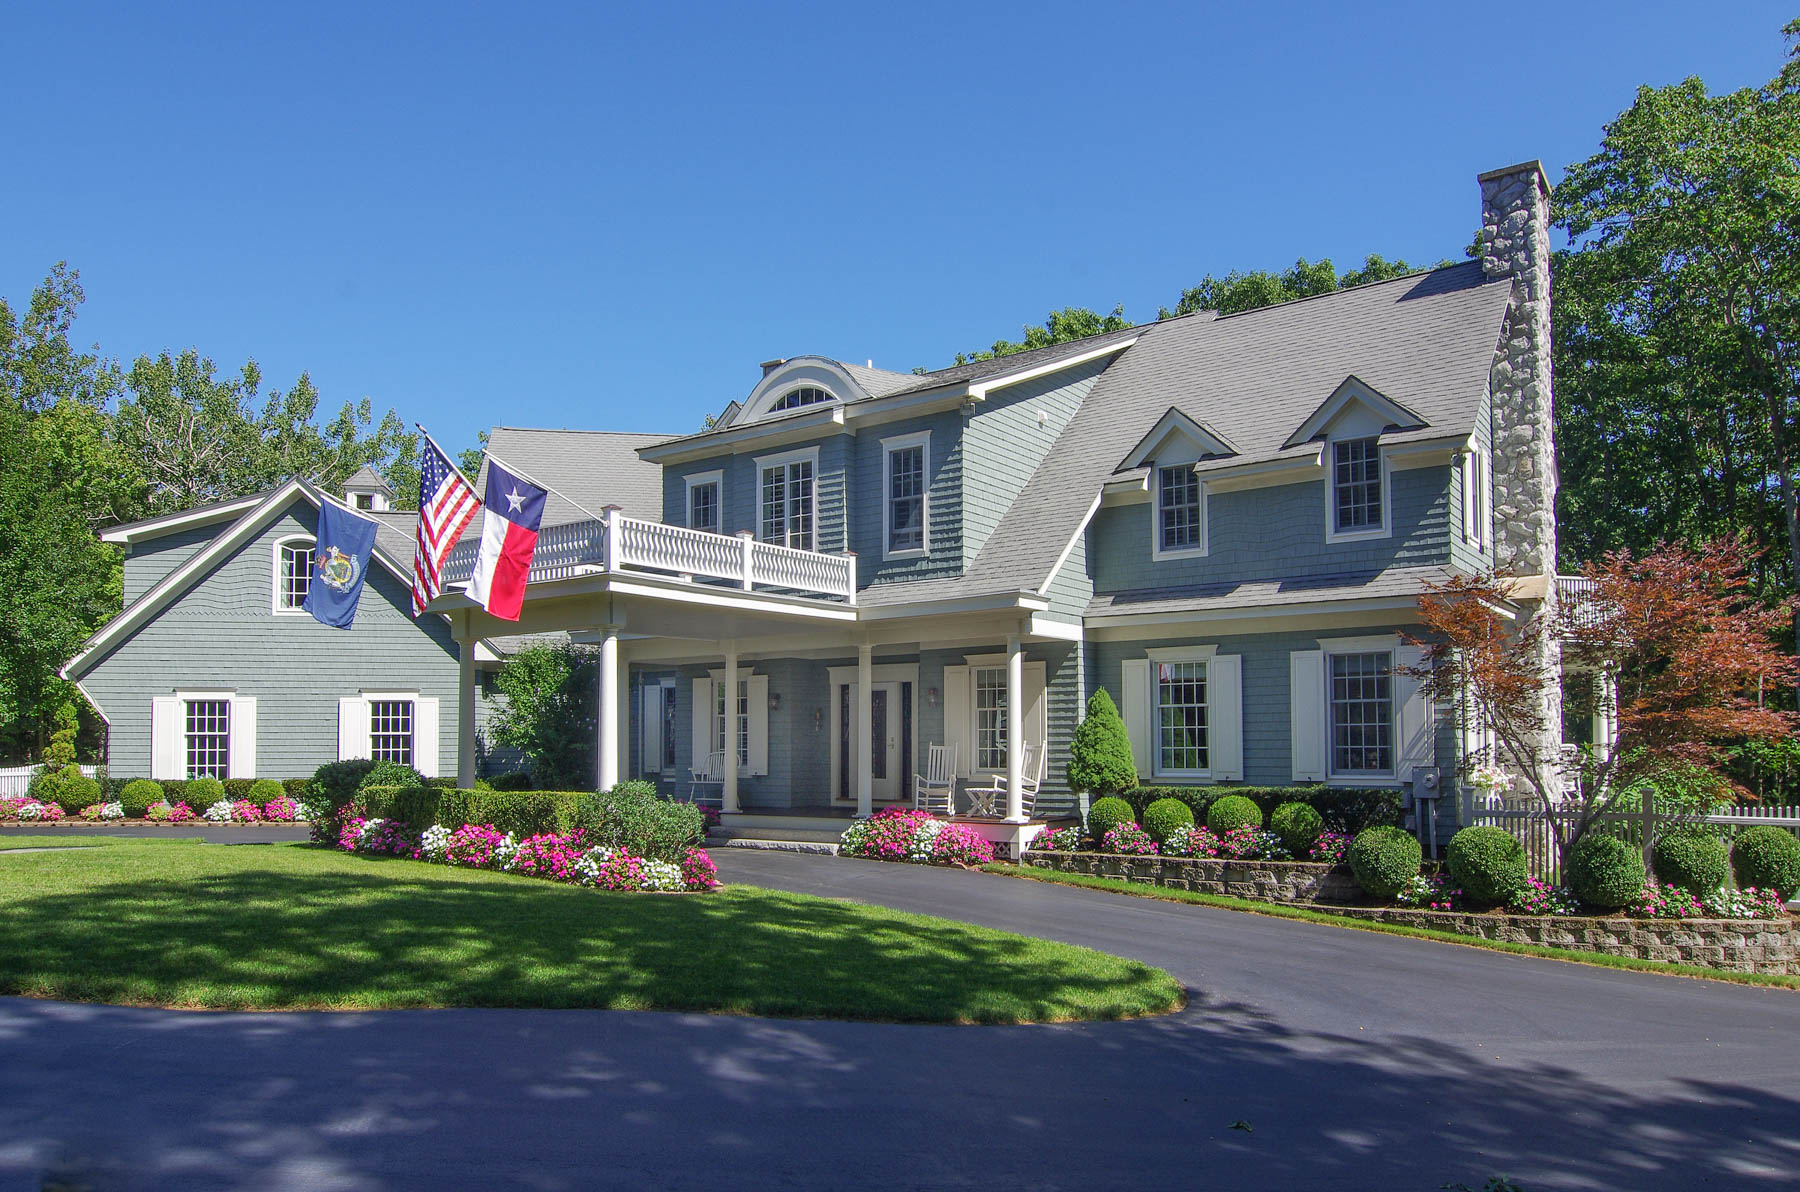 Single Family Home for Sale at Chickadee Cottage 2 Poet's Lane Kennebunkport, Maine 04046 United States